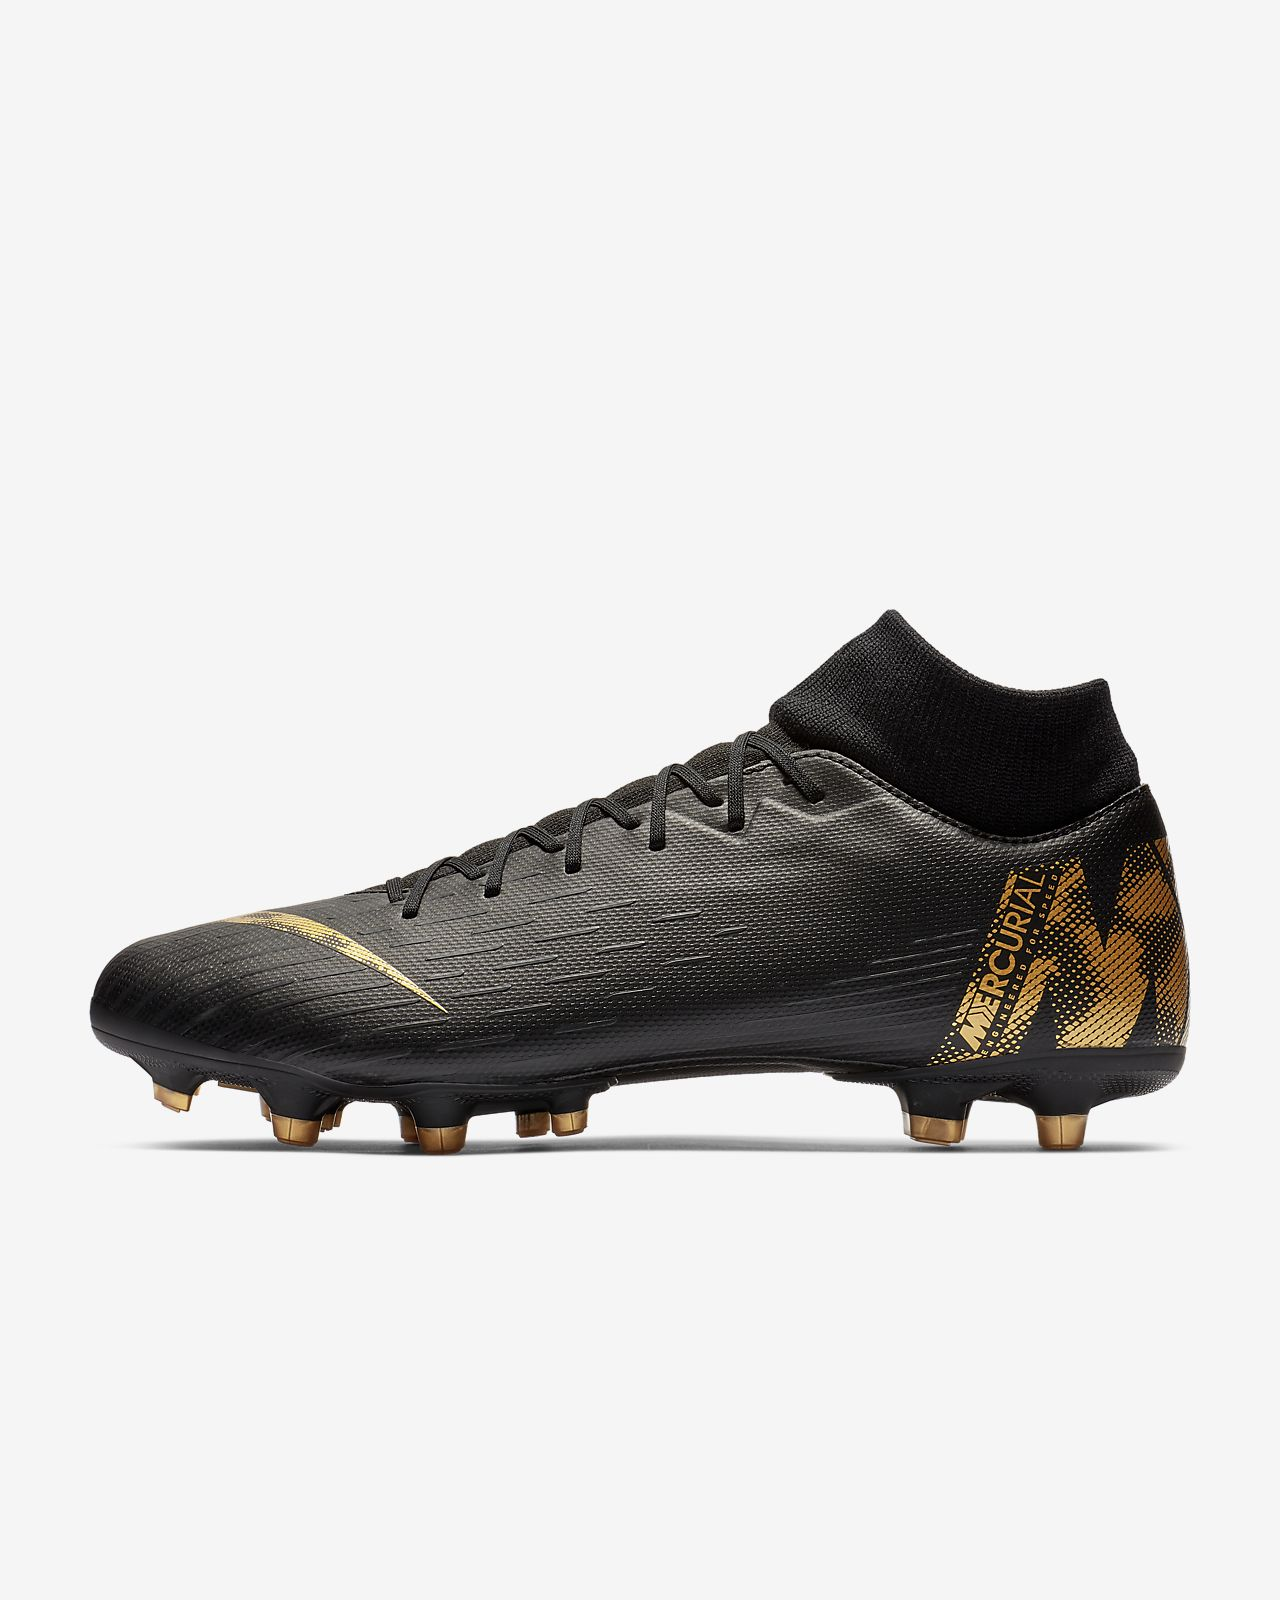 c185100bd12666 Nike Mercurial Superfly 6 Academy MG Multi-Ground Soccer Cleat. Nike.com